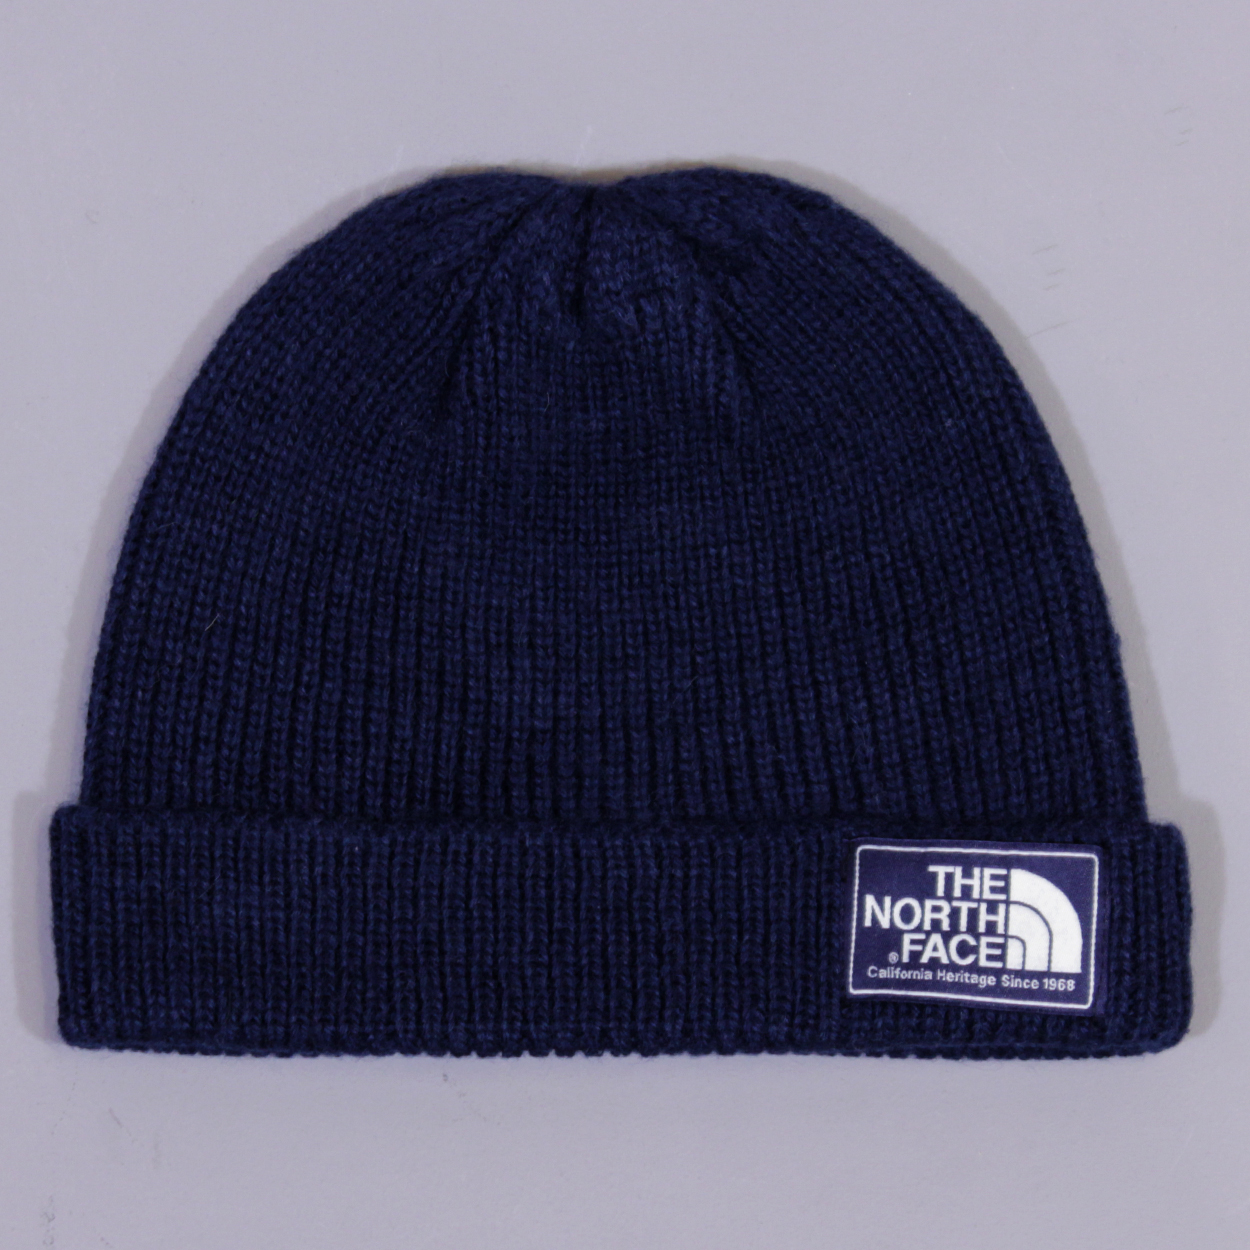 The North Face California Heritage Shipyard Beanie Winter Hat Cos £14.00 ad28829bf42